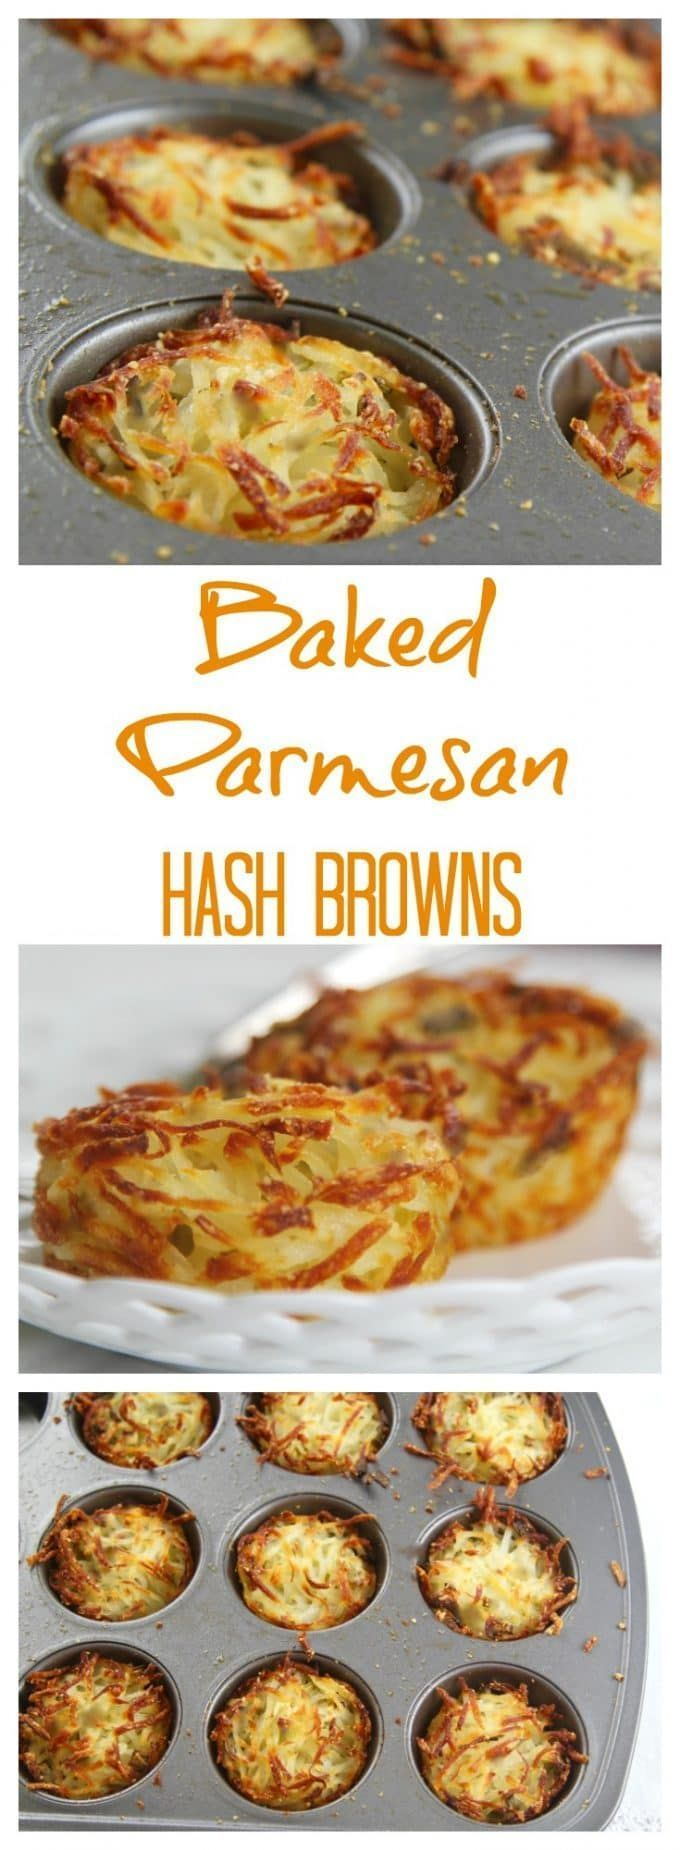 Easy BAKED Parmesan Hash Browns in muffin tins. This parmesan hash browns recipe will give you crispy golden edges and soft centers.